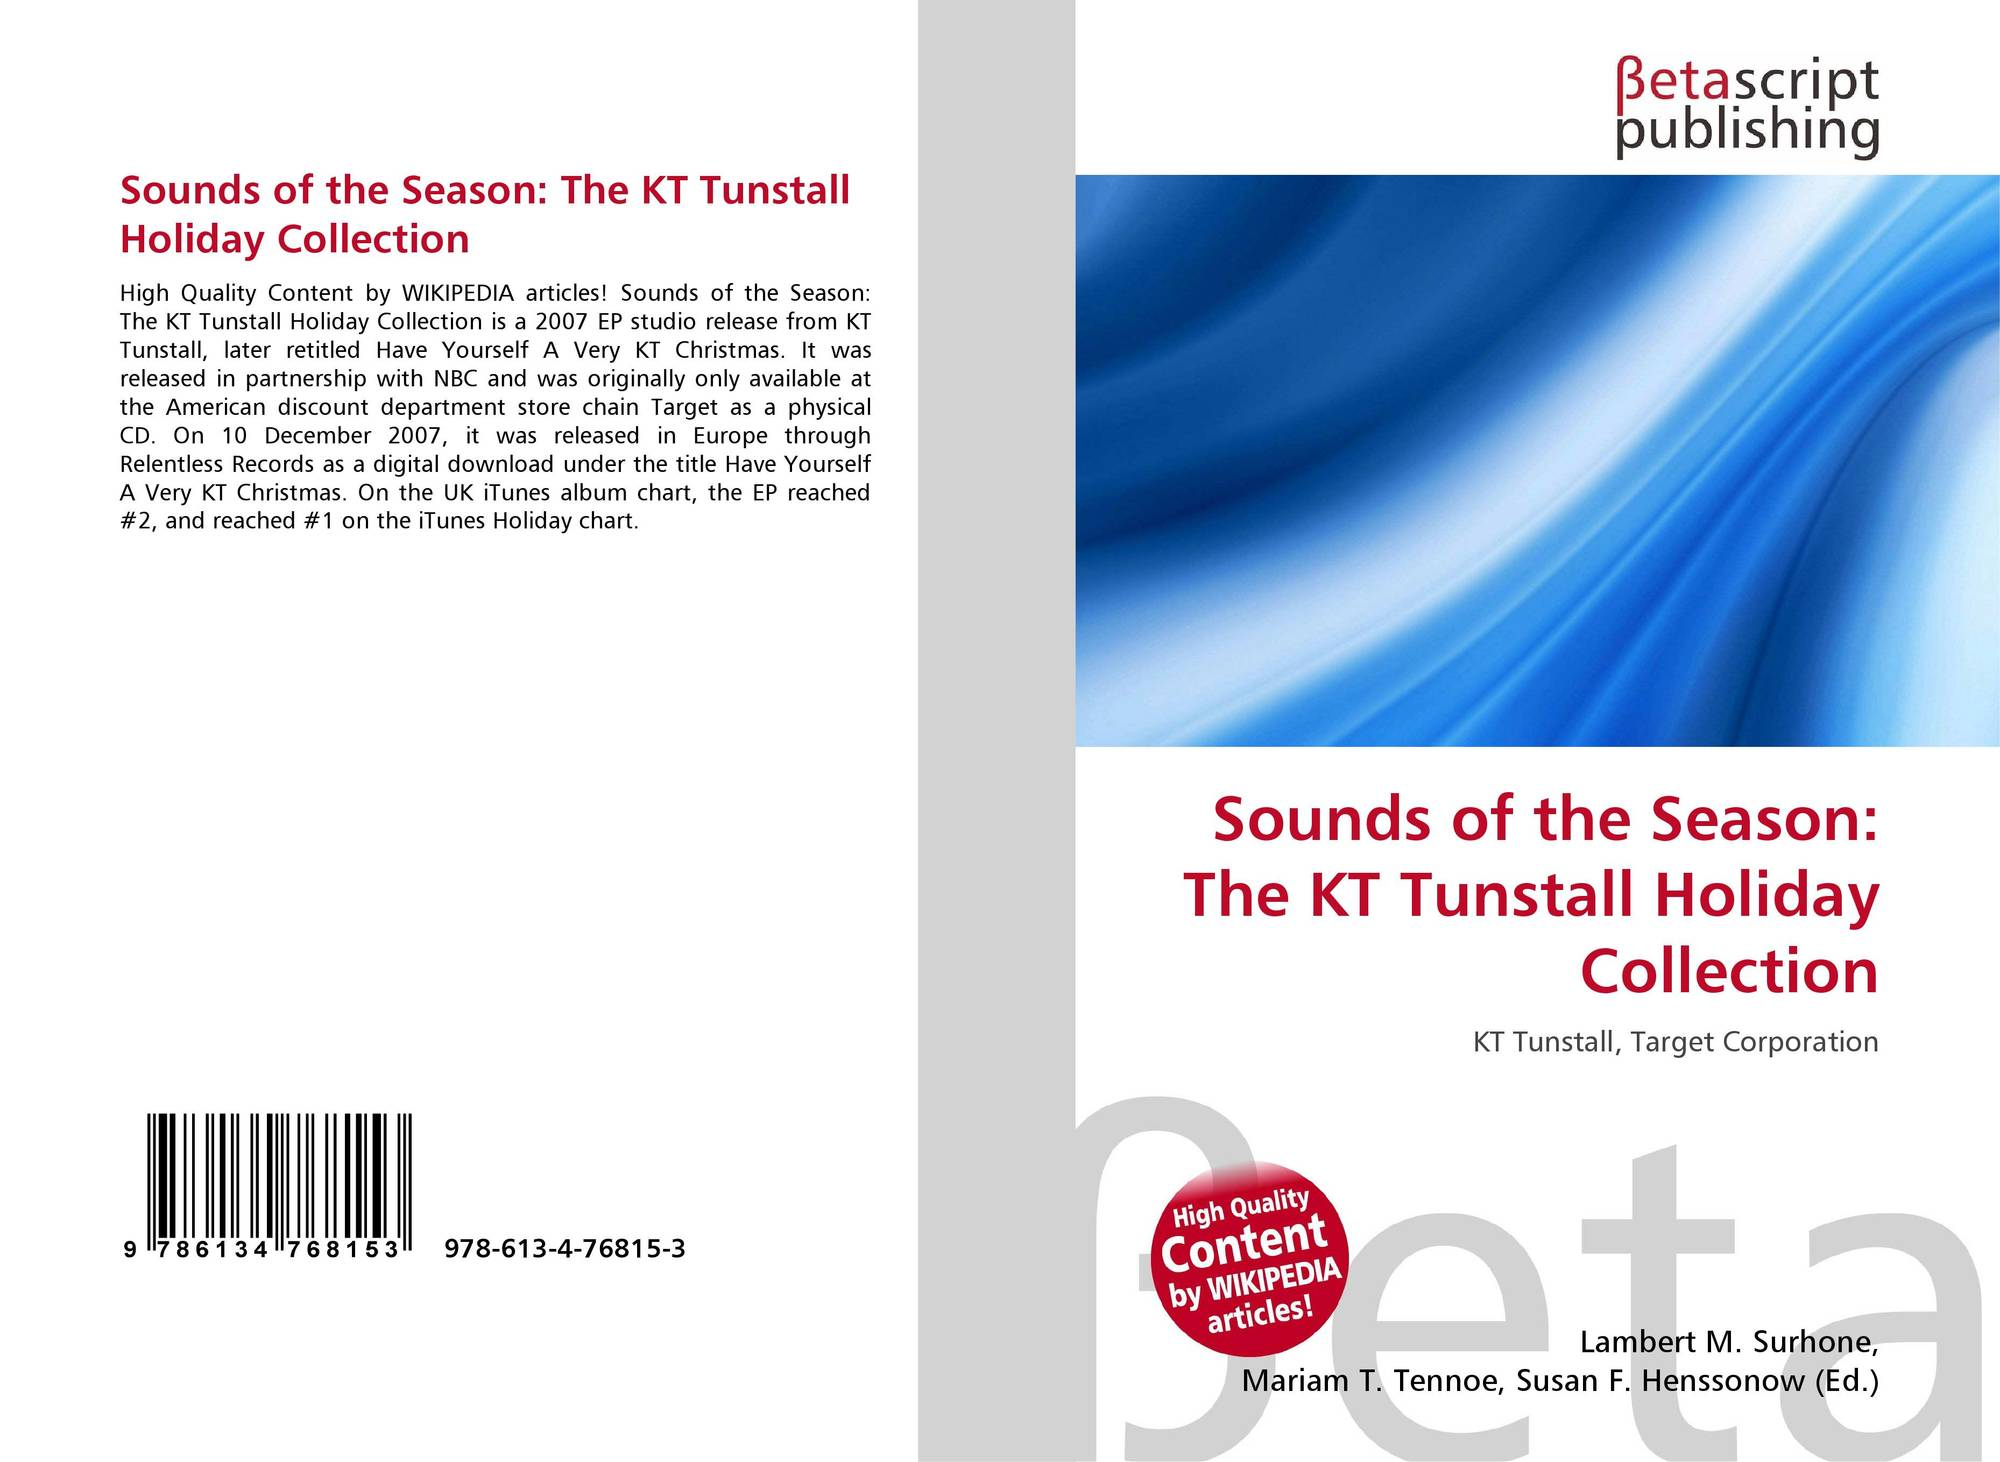 The KT Tunstall Holiday Collection